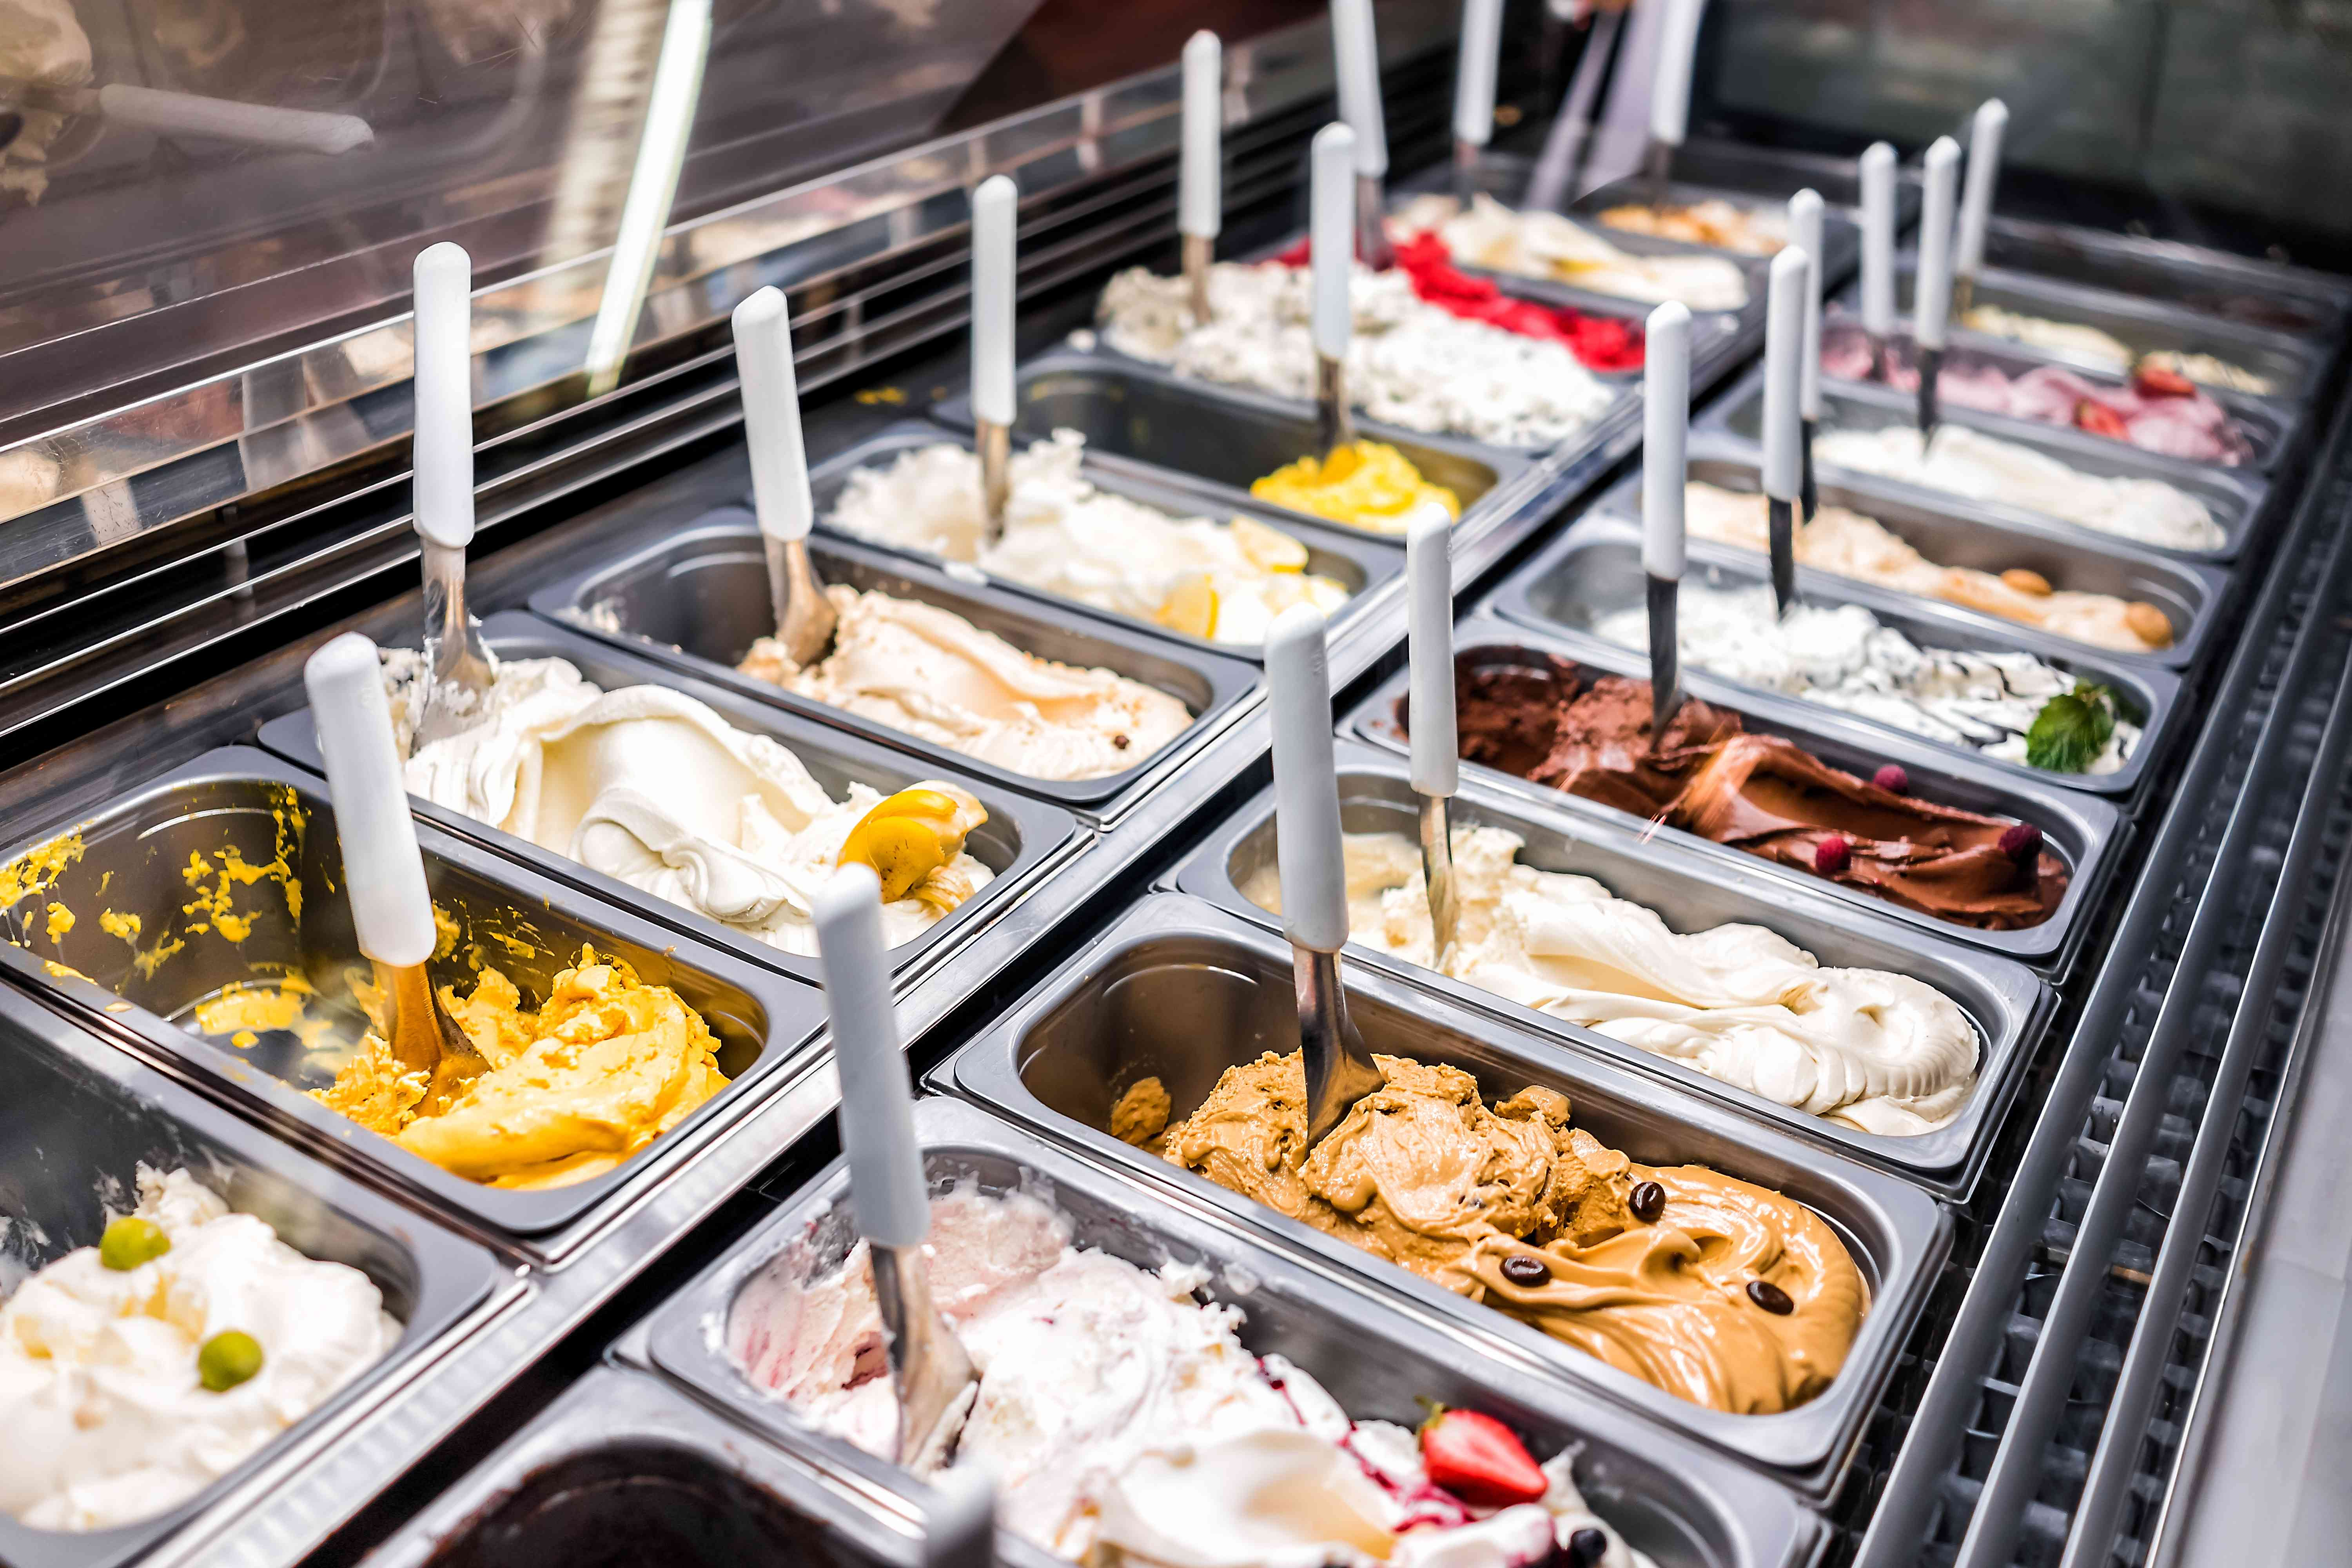 Ice cream frozen yogurt colorful serving counter parlour with many scoopable flavors, sorbet, chocolate, toppings, coffee